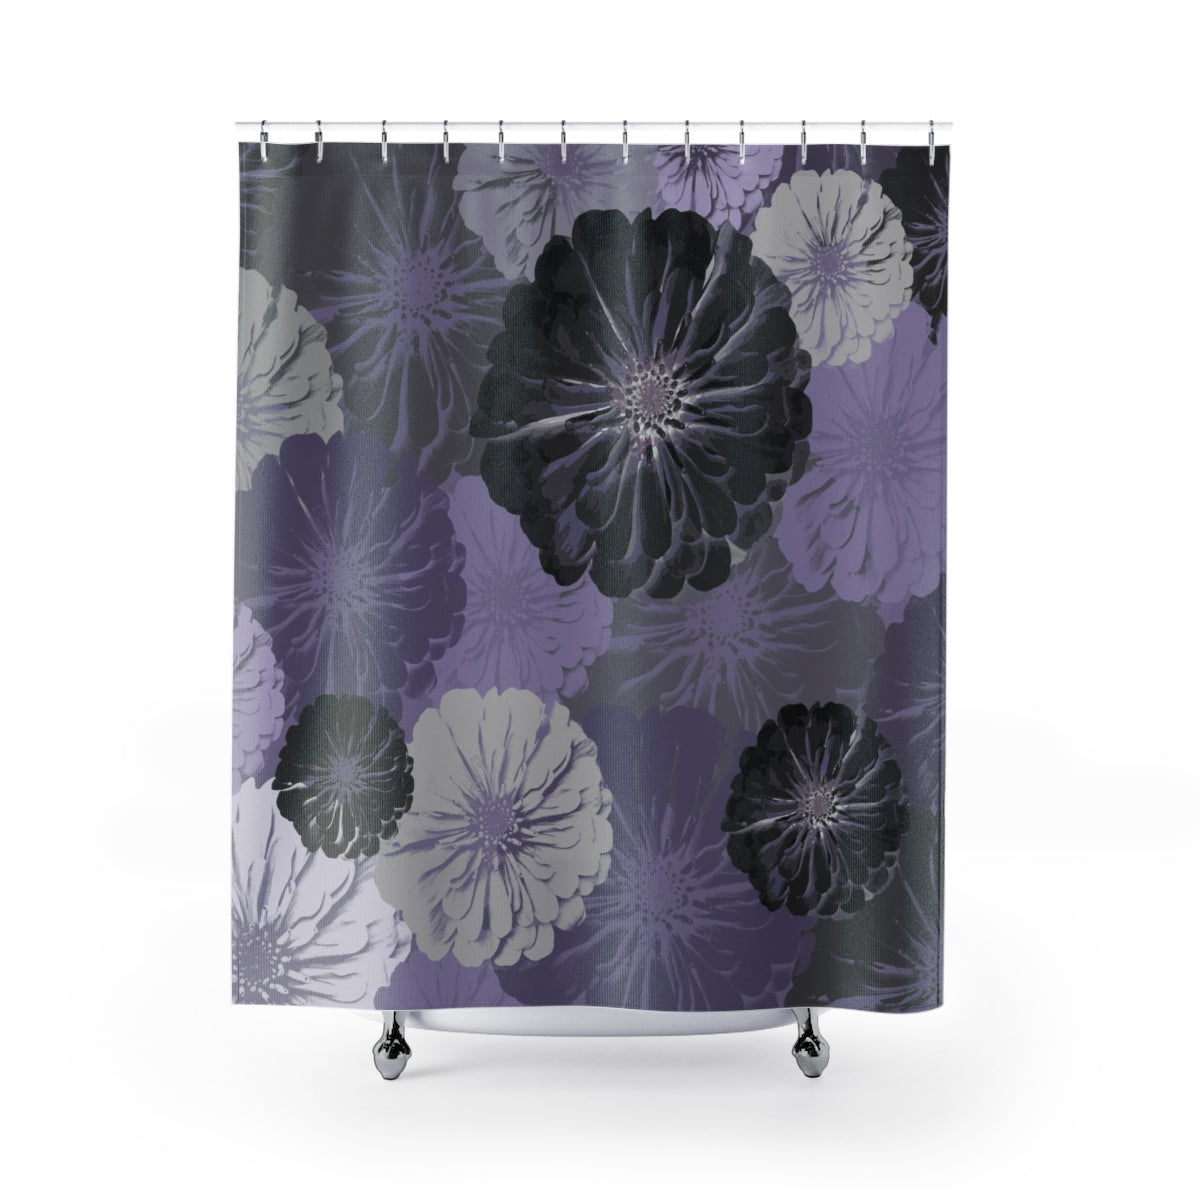 Purple and Gray Floral Print Shower Curtain - Metro Shower Curtains